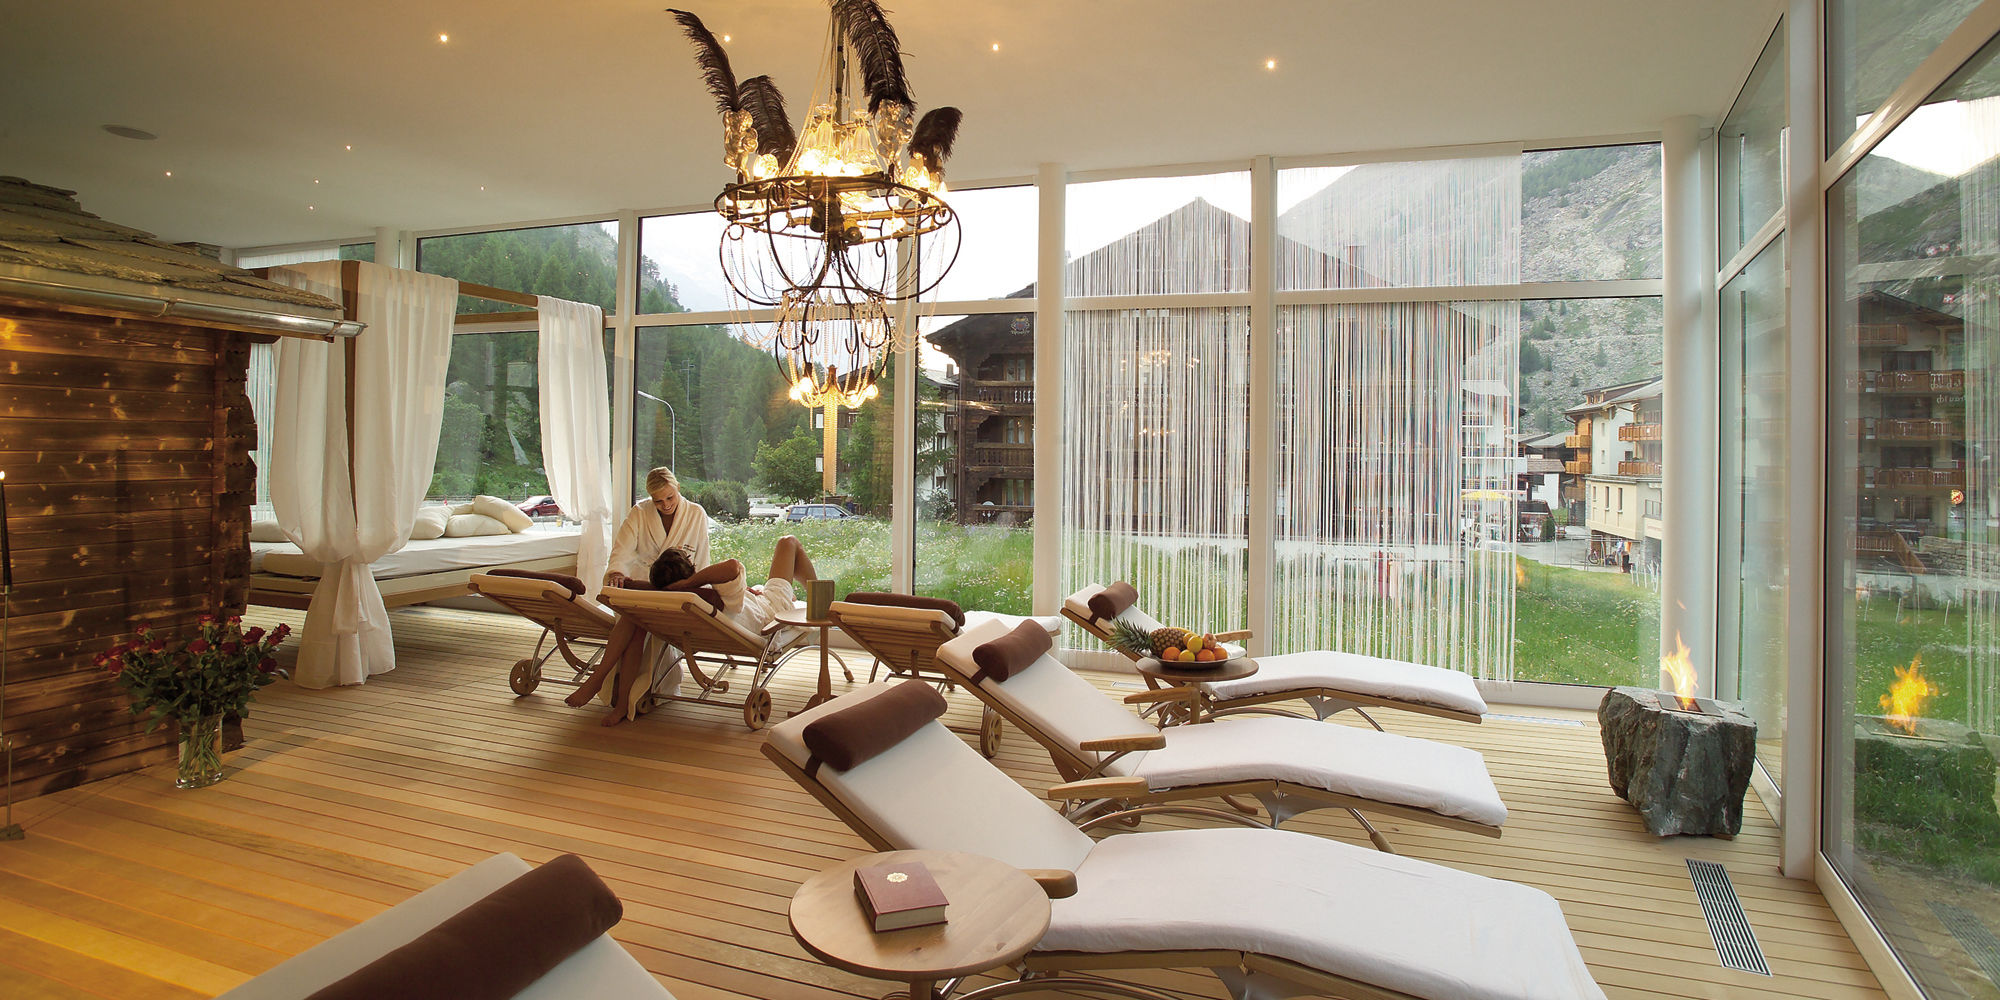 Wellness Anlagen in Saas-Fee